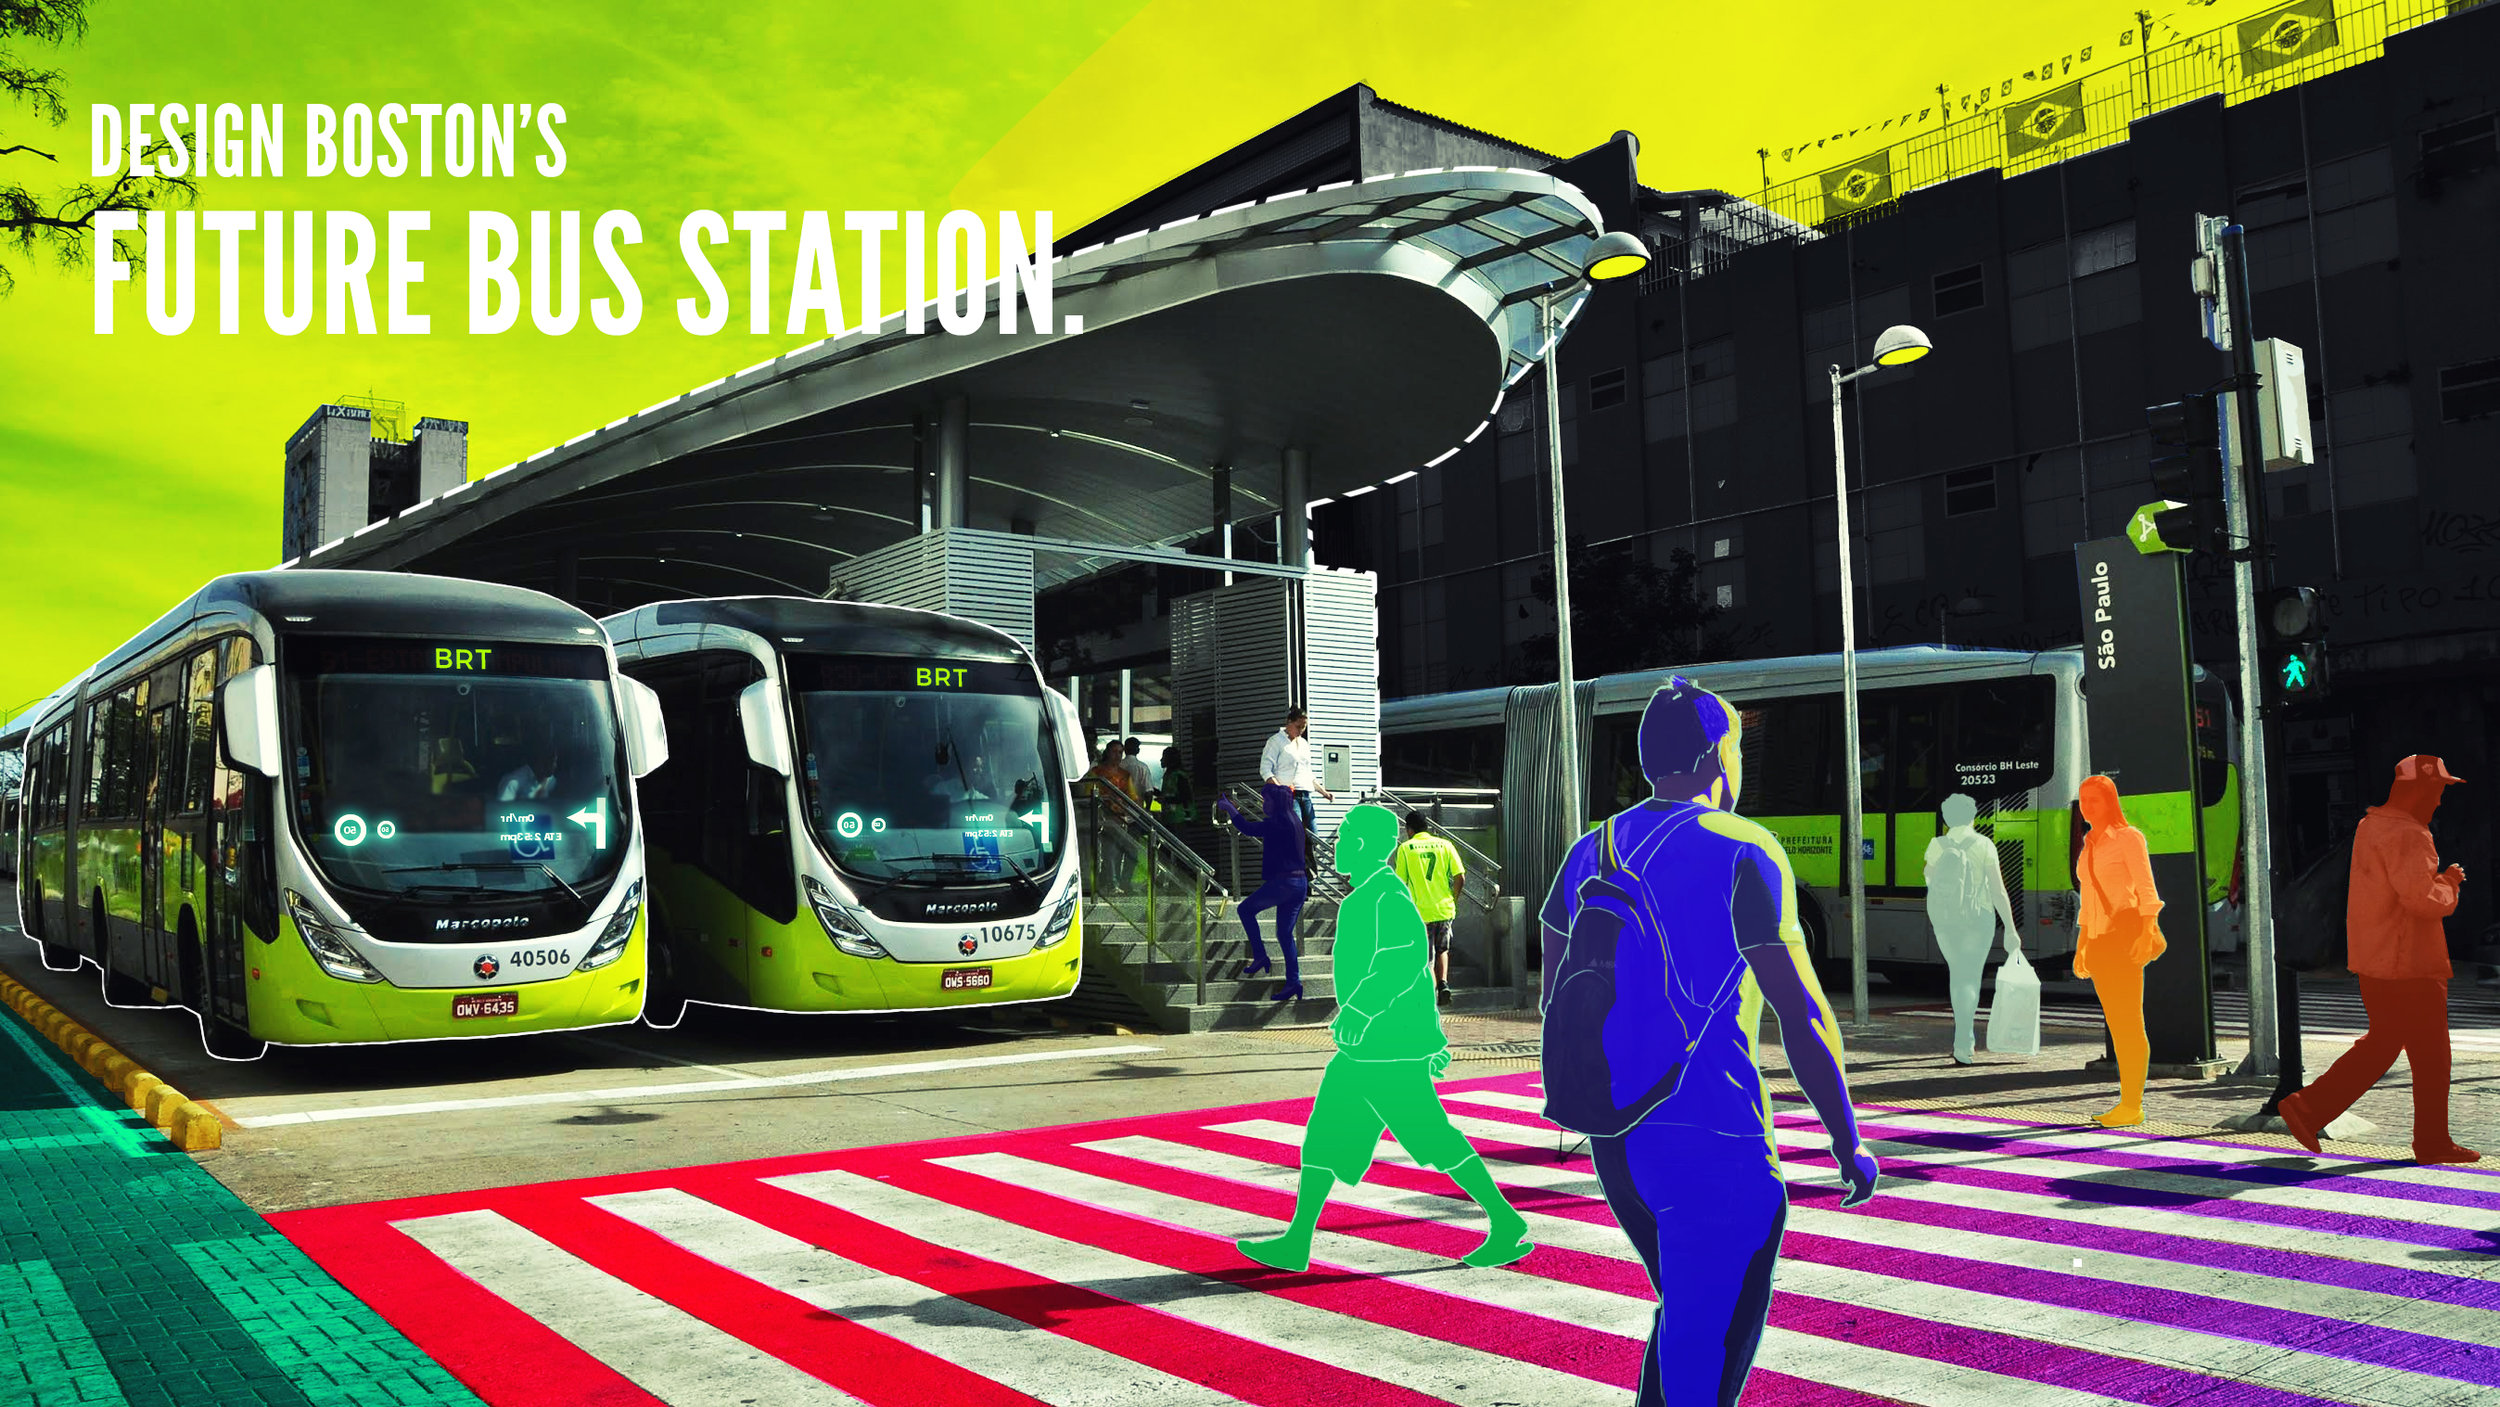 brt_station_competition1.jpg